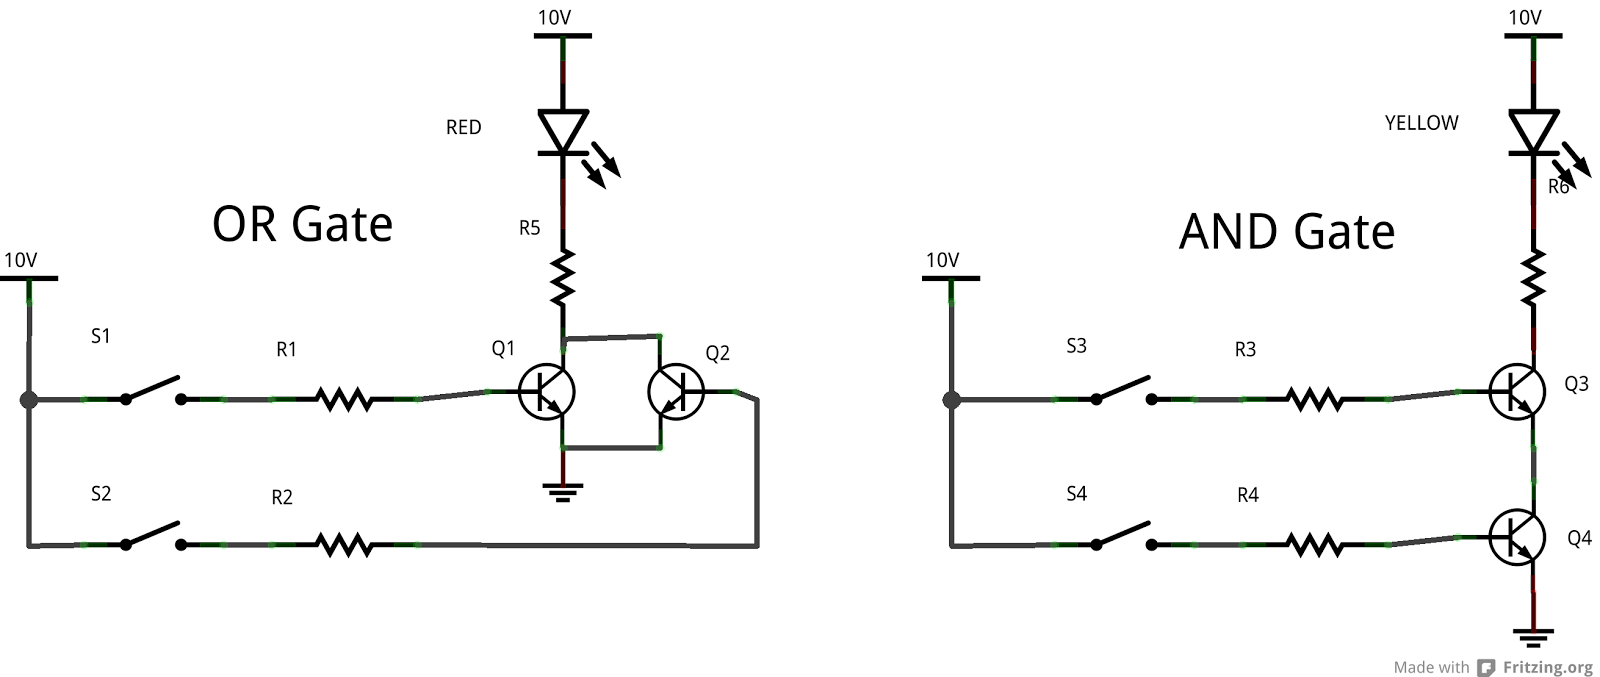 Electronics Projects And Tutorials February 2013 Not Logic Gate Transistor Circuit In The Next Part We Will Look At Integrated Circuits That Contains Four To Six Gates Of Same Kind 74 Series This Help Us